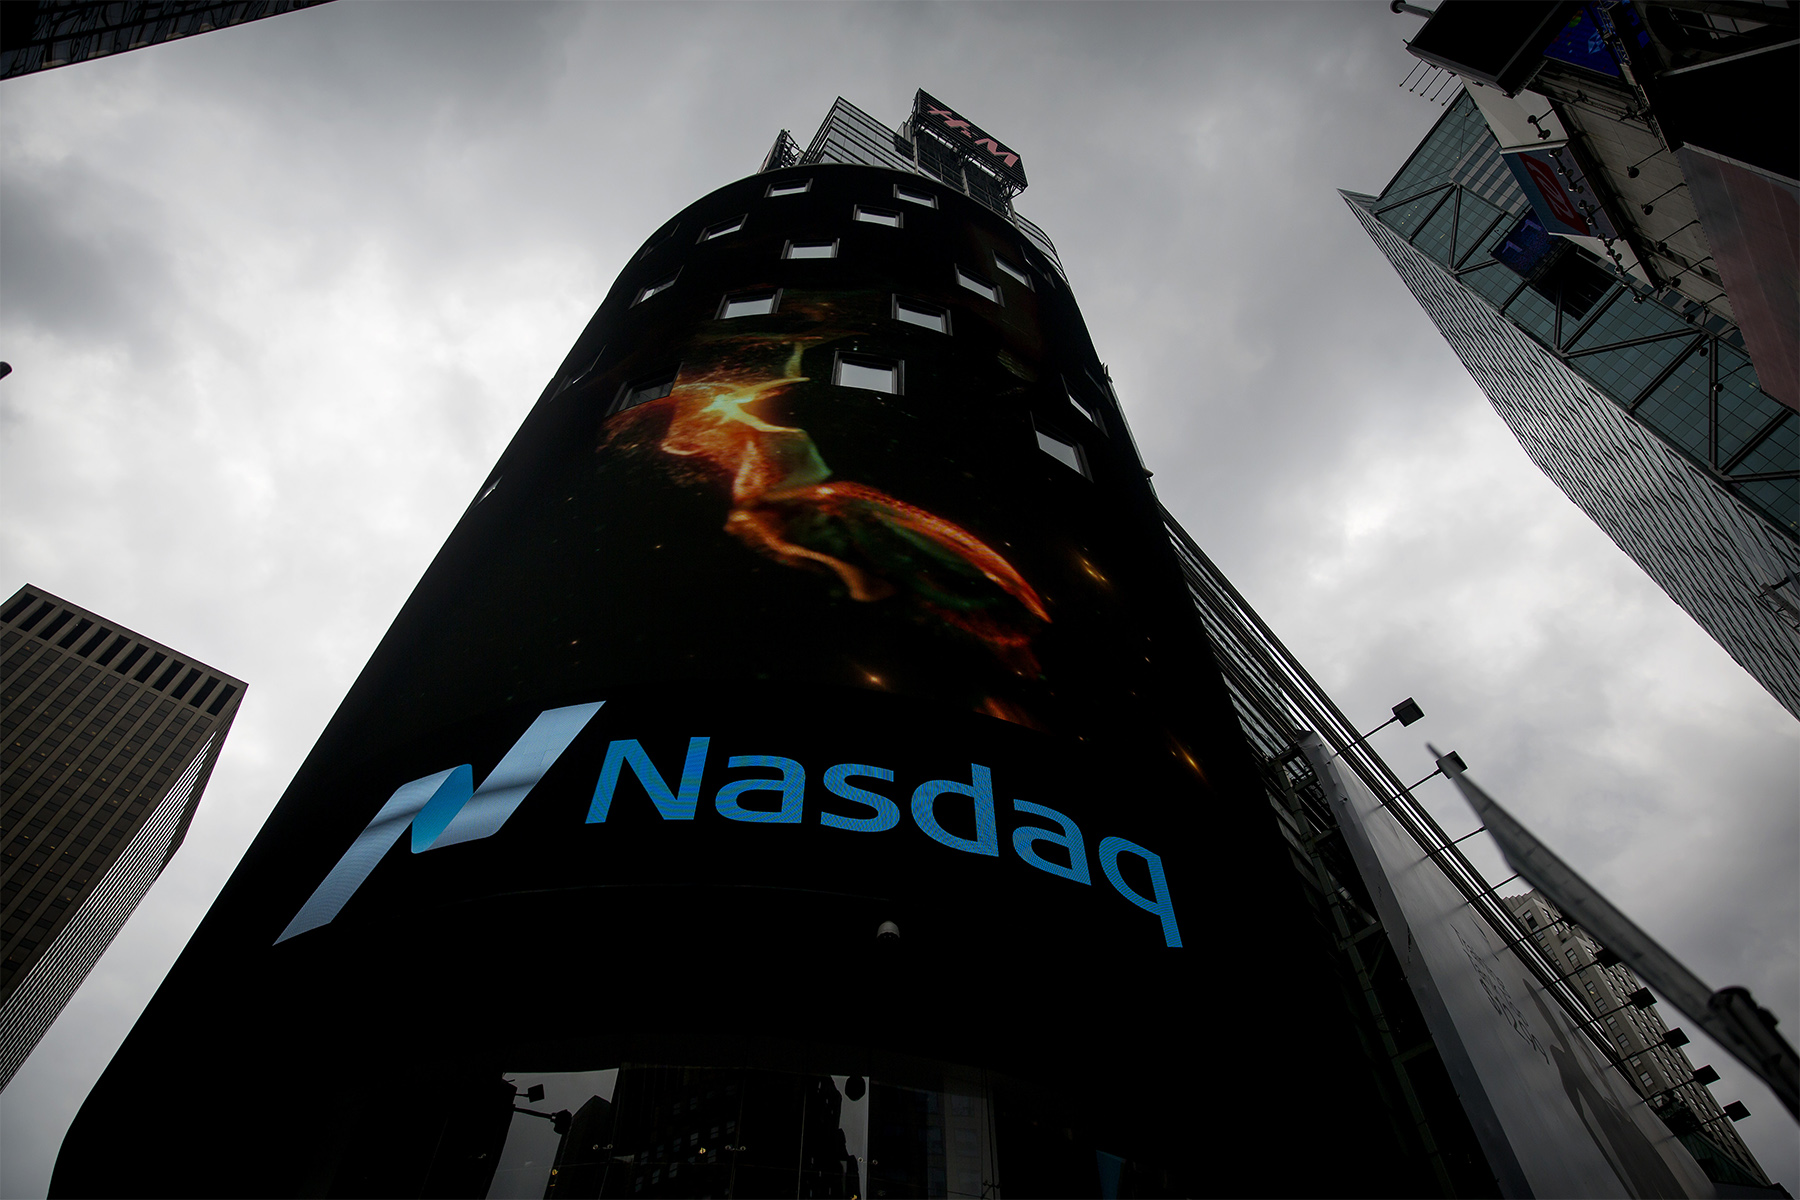 The Nasdaq MarketSite Stands In The Times Square Area Of New York, U.S., On Thursday, Aug. 18, 2016. U.S. Stocks Fluctuated As Investors Weighed Near-record Equity Levels, And Indications An Uncertain Economic Outlook Leaves Policy Makers With Little Reason To Raise Interest Rates. Photographer: Eric Thayer/Bloomberg